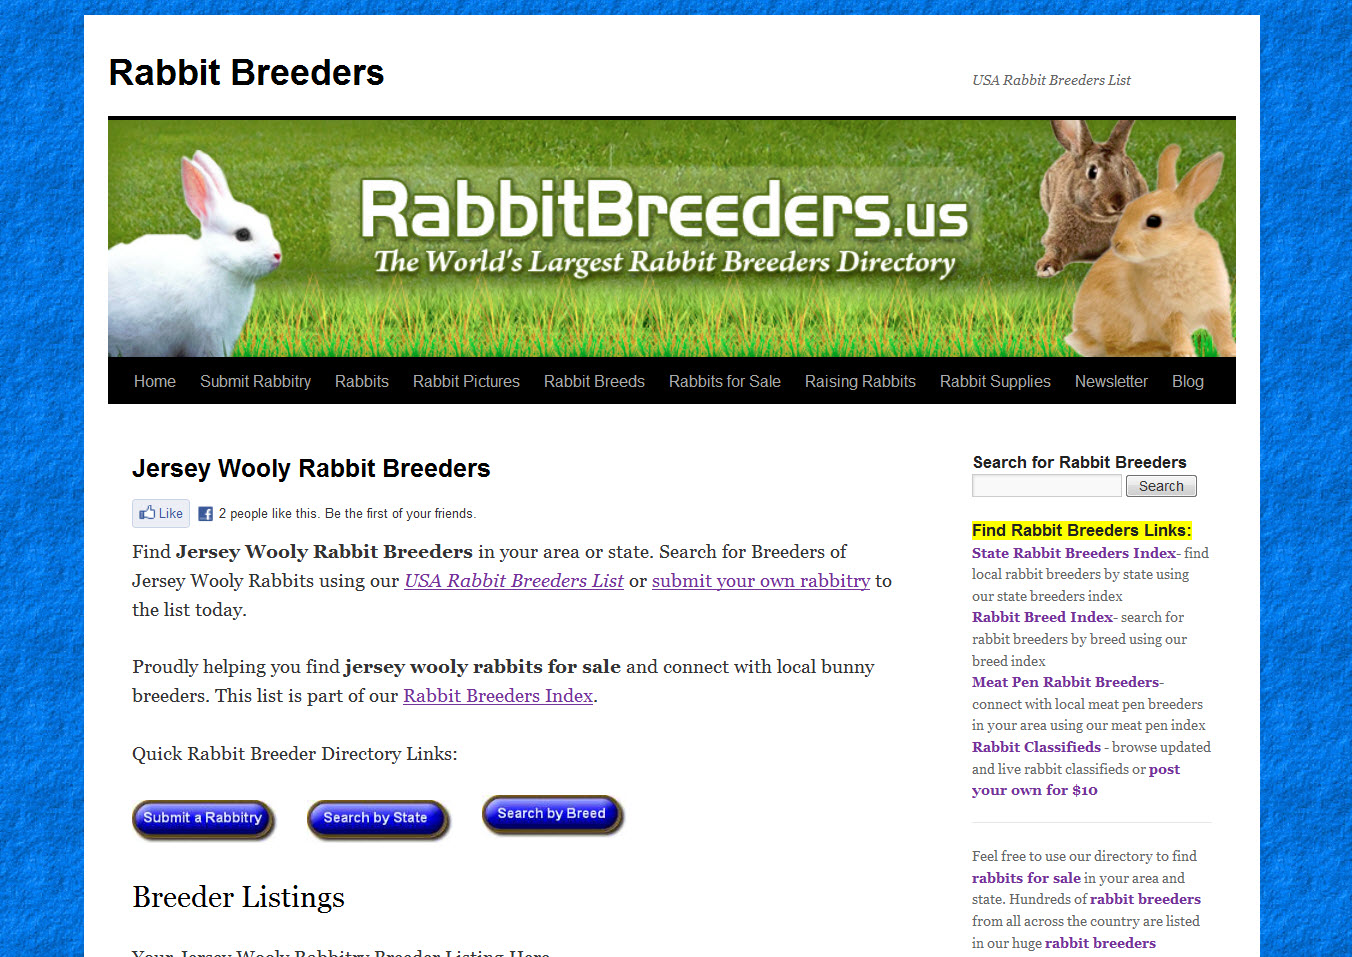 Jersey Wooly Rabbit Breeders